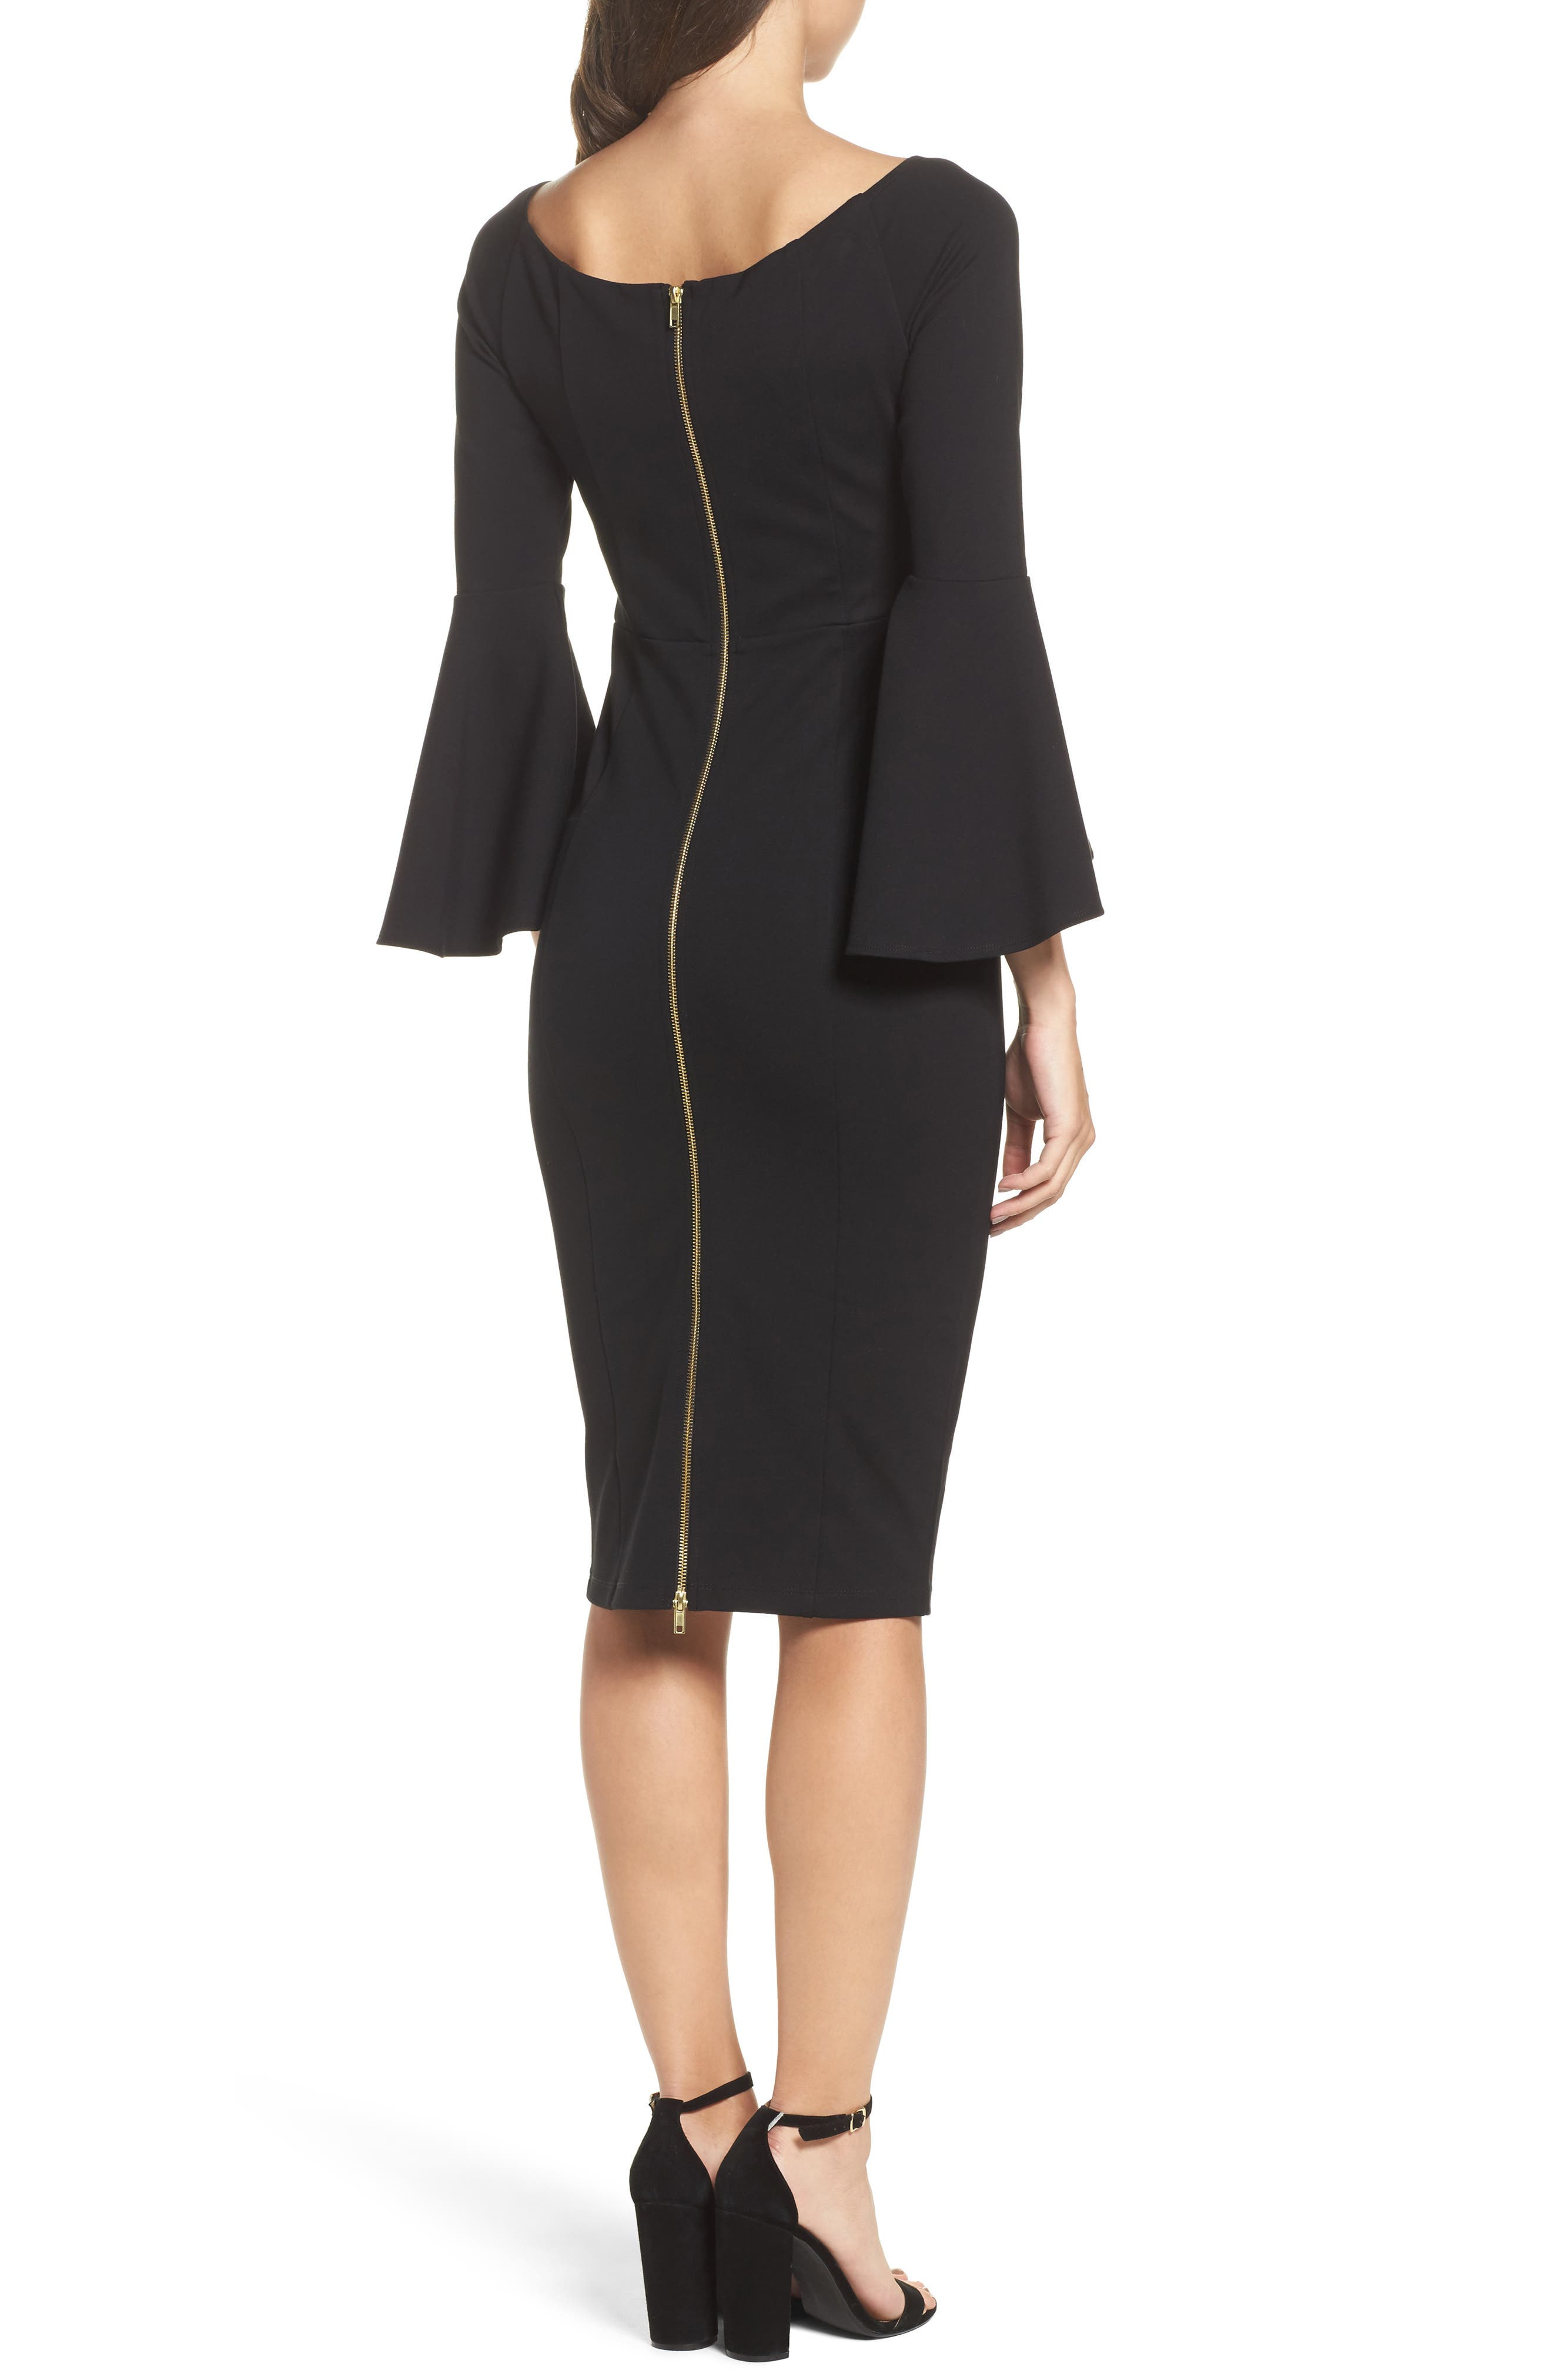 Milly Bell Sleeve Midi Dress,                             Alternate thumbnail 2, color,                             401